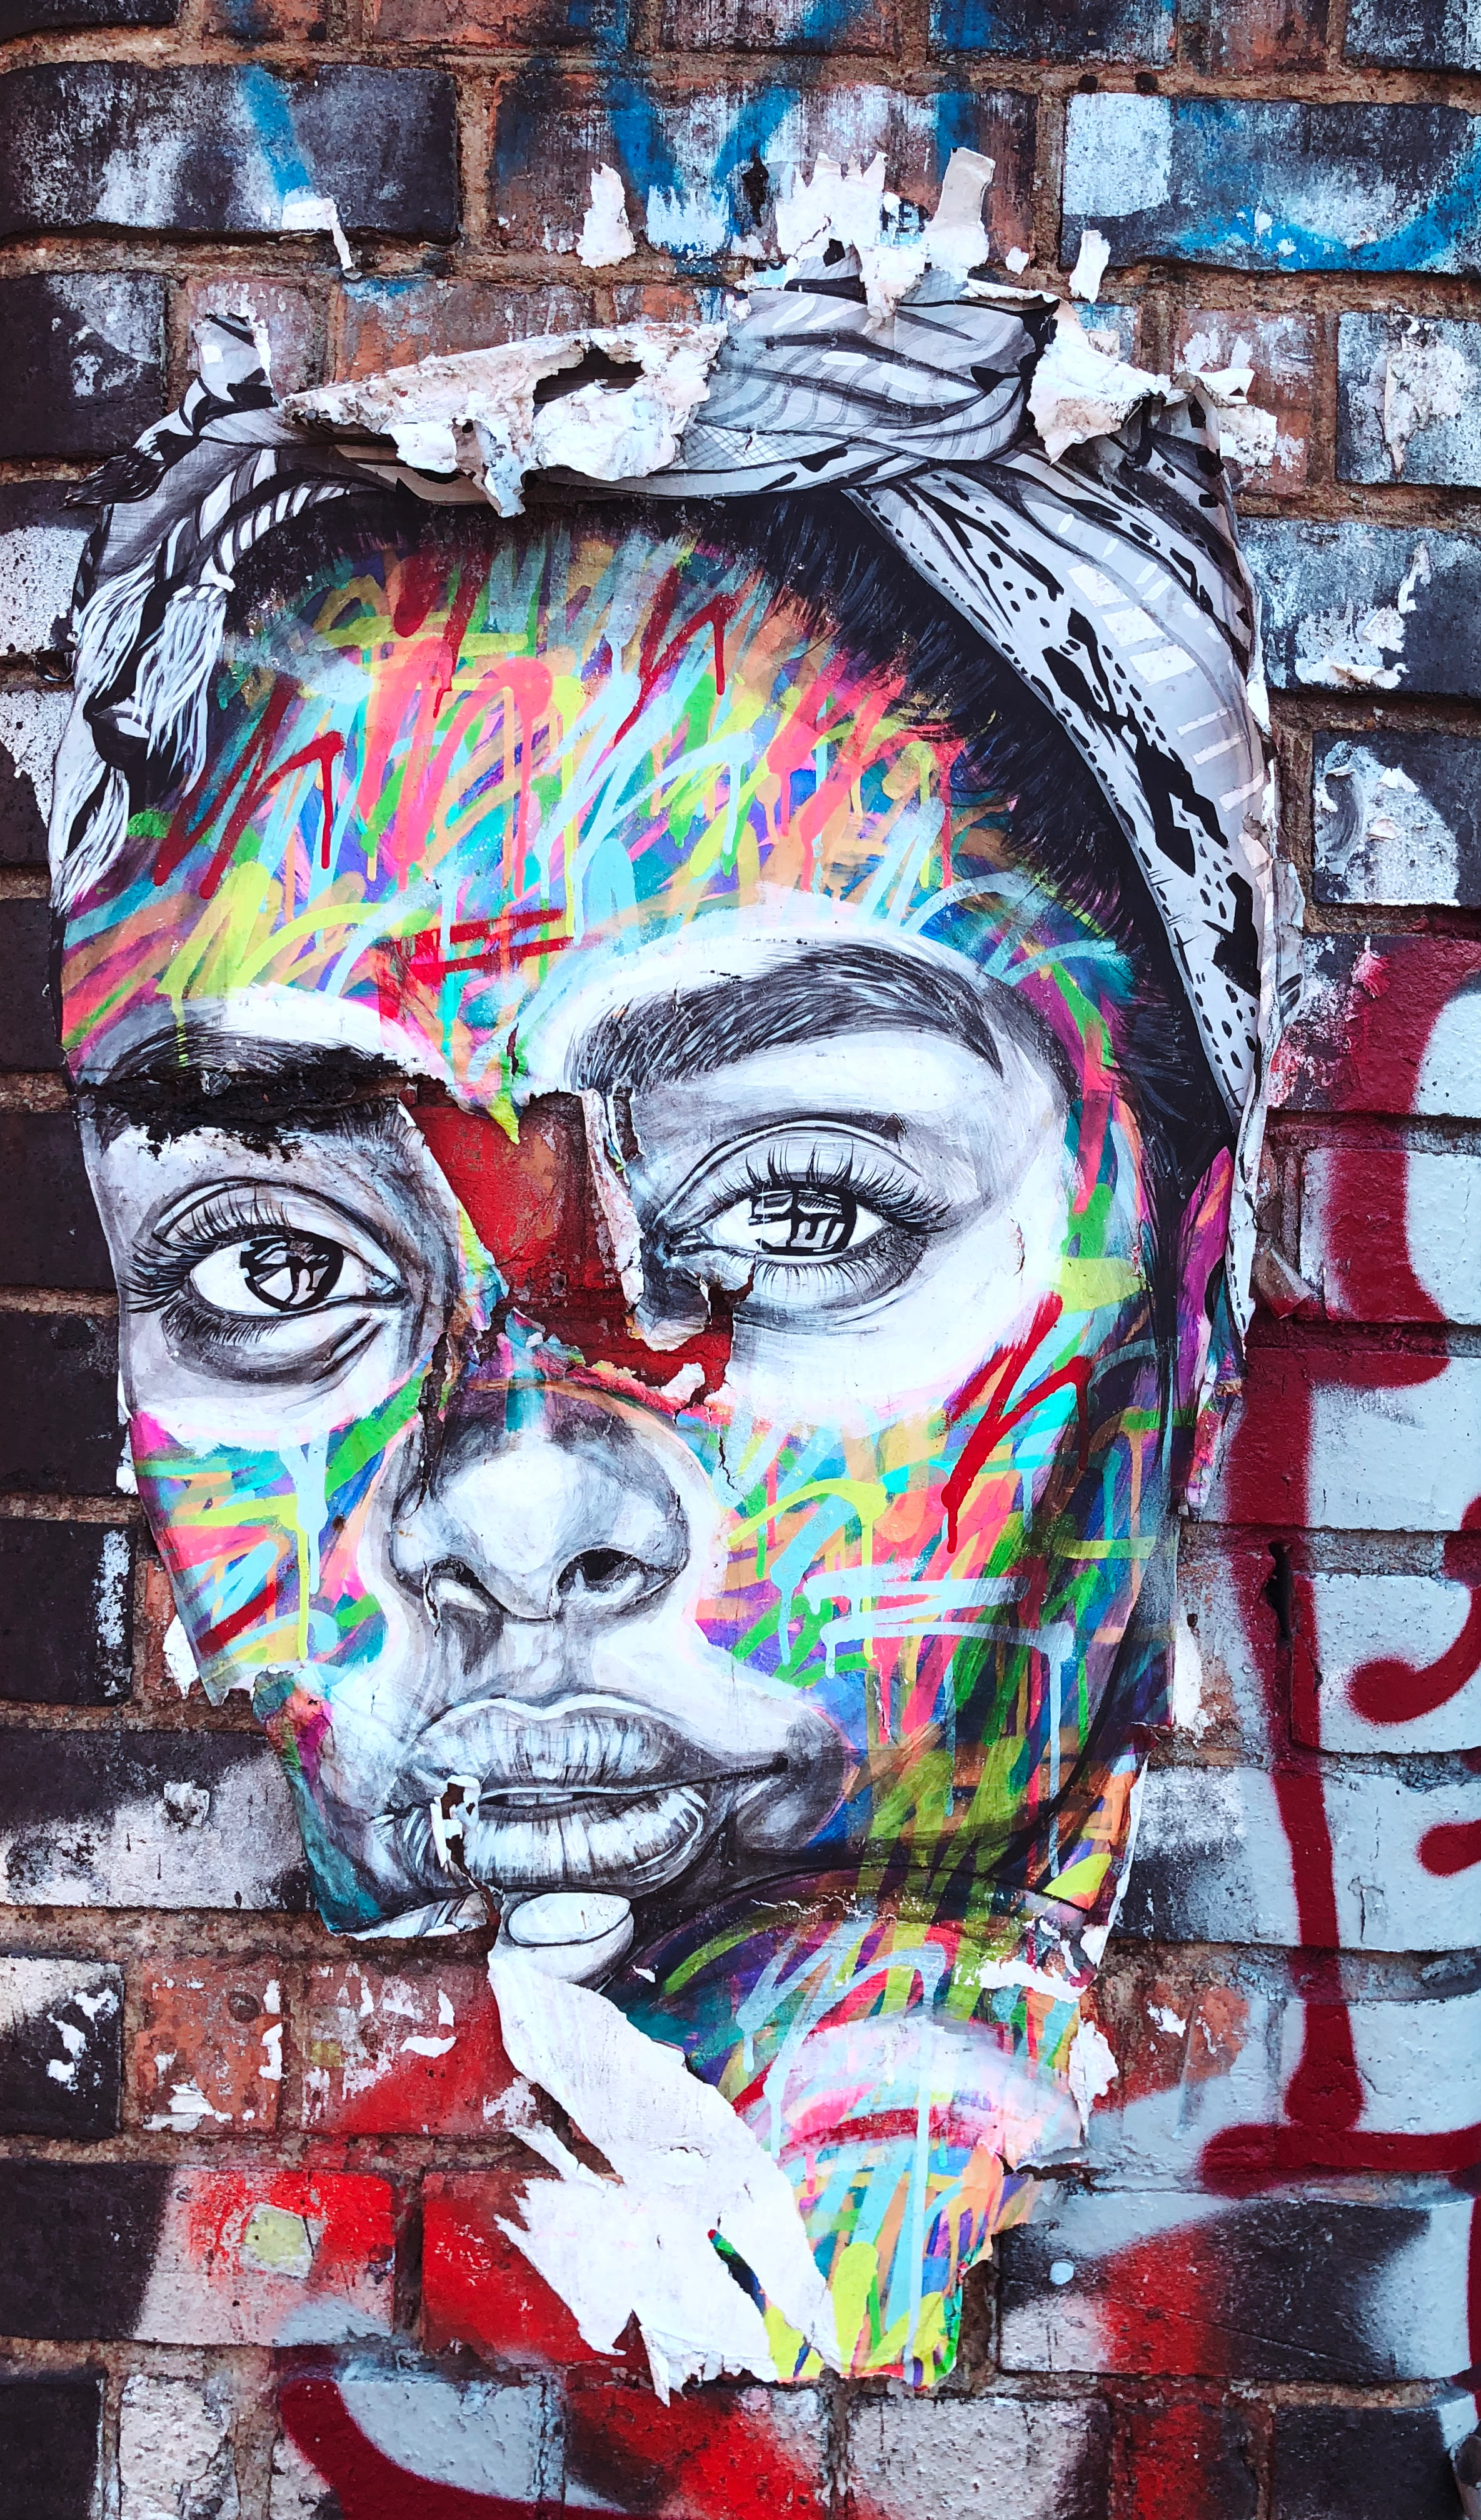 Graffiti art on a brick wall which is the face of a woman.